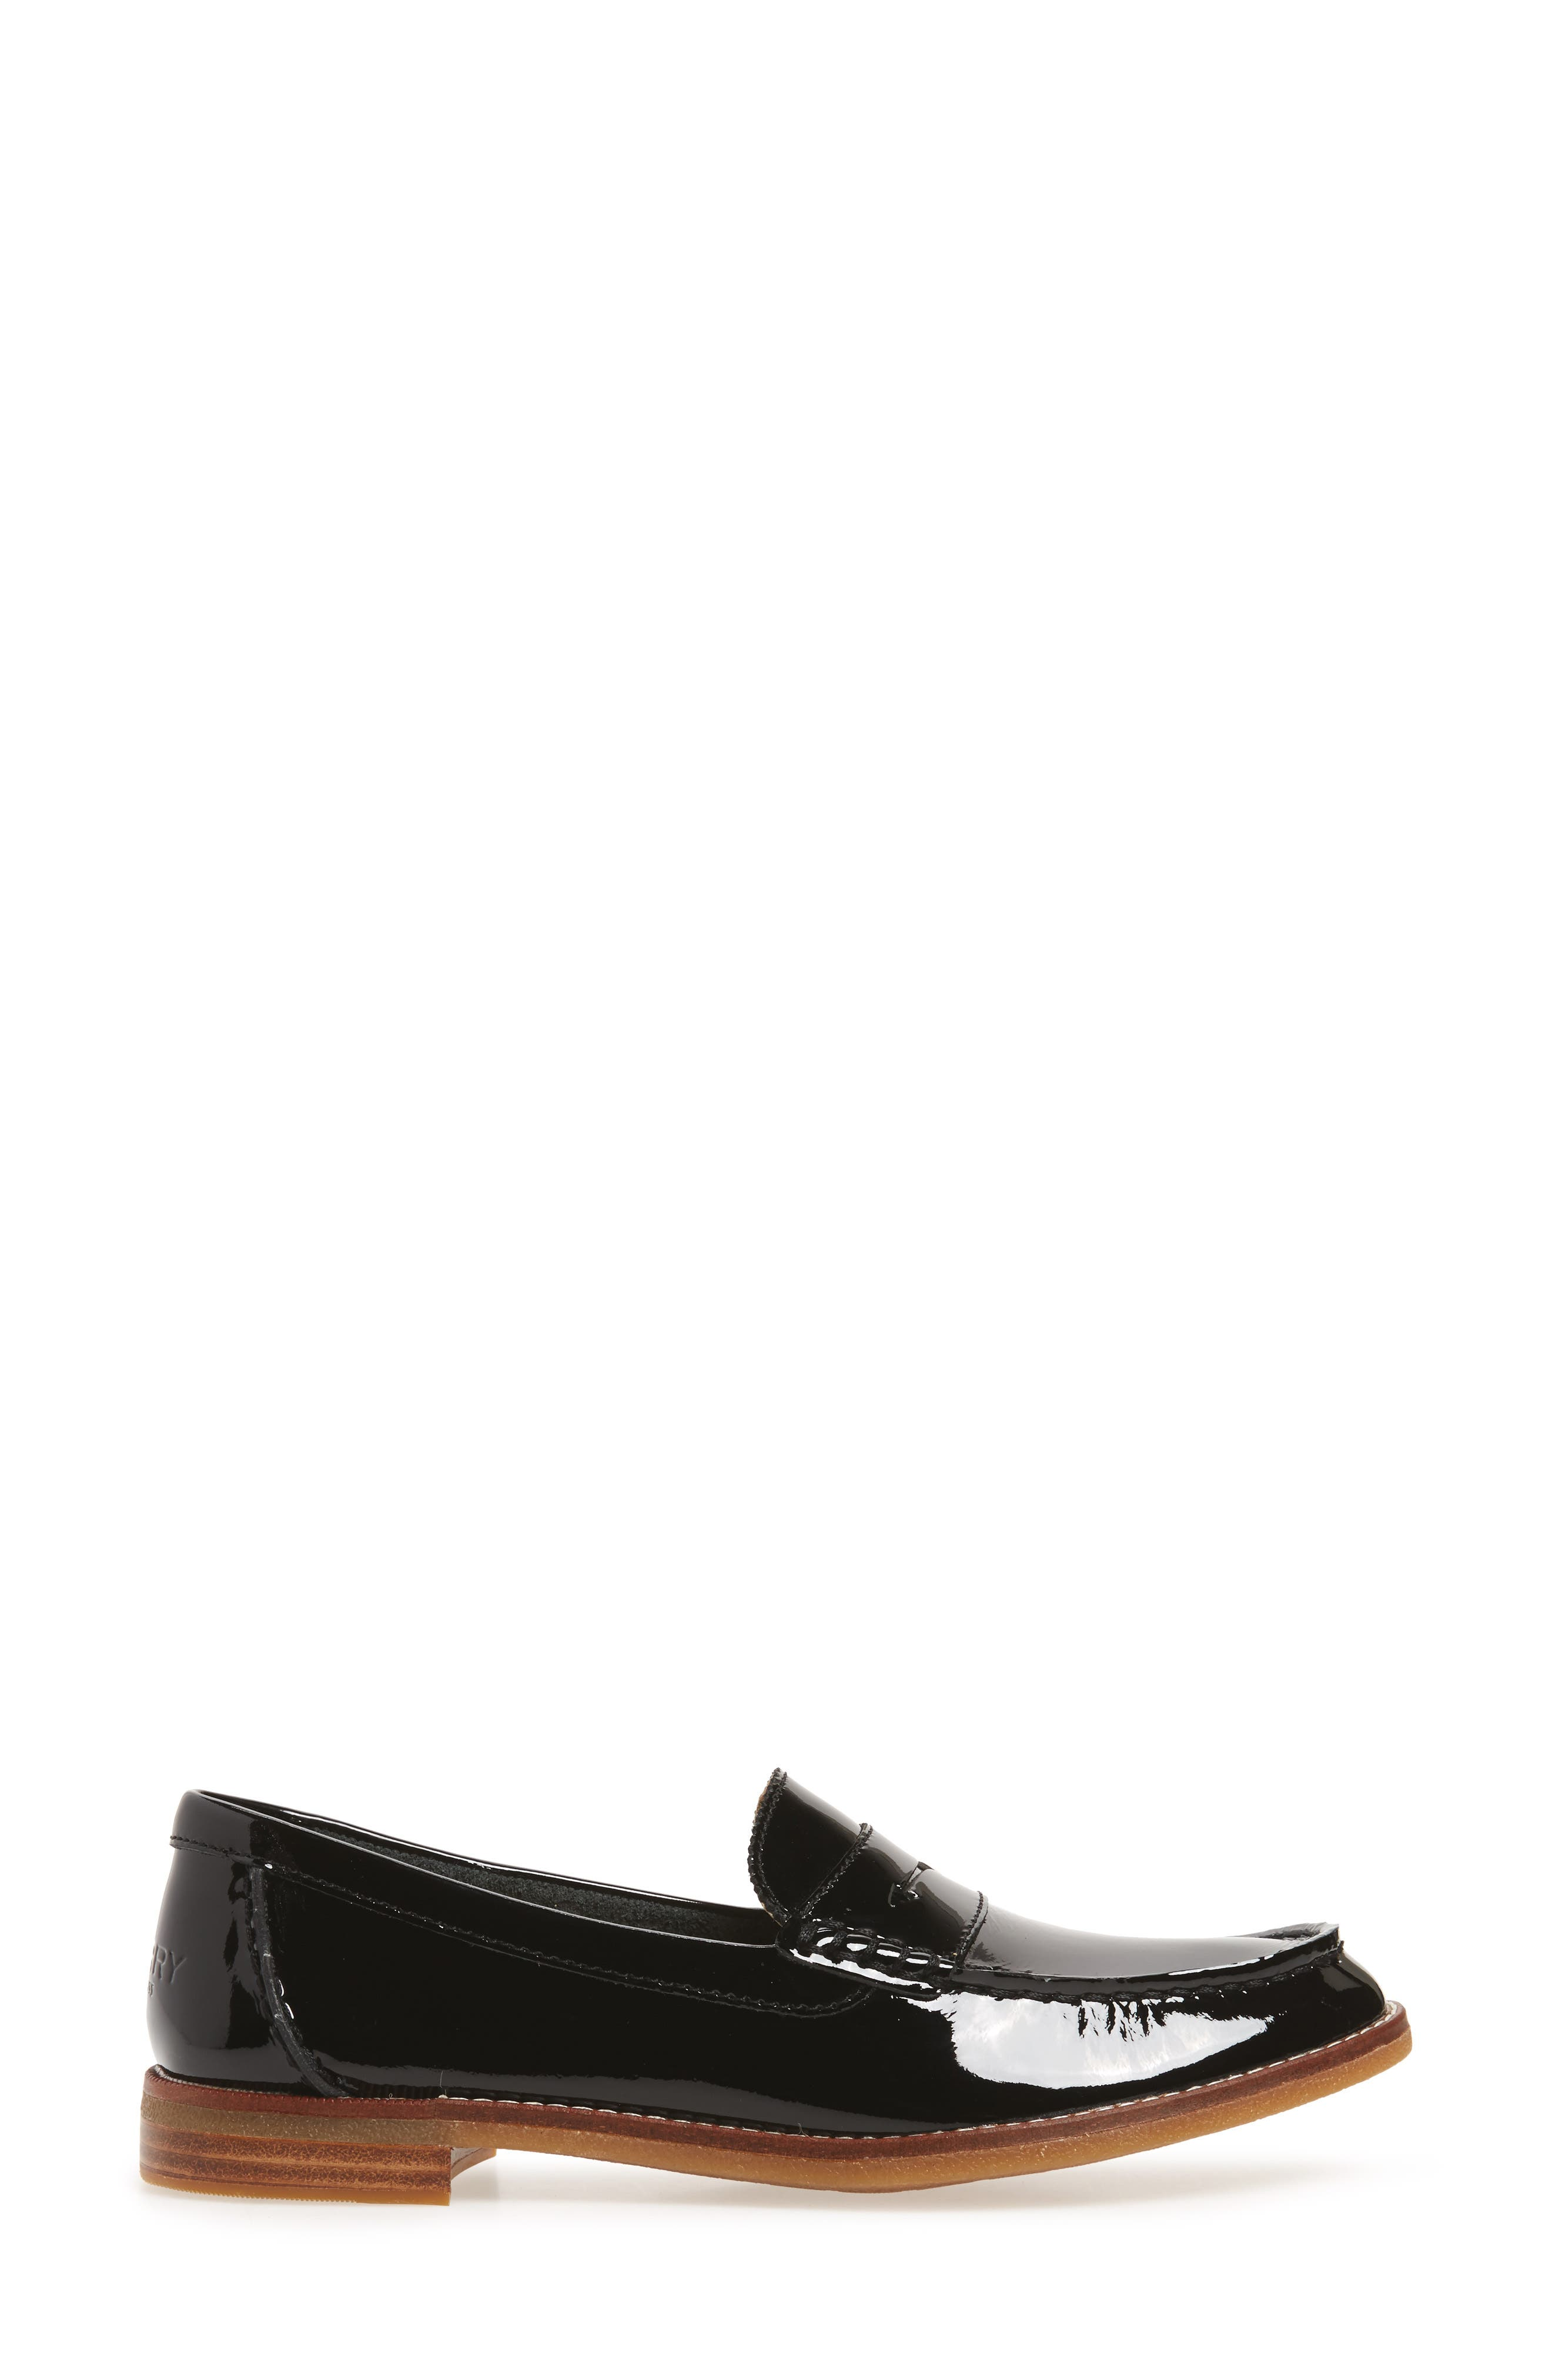 Seaport Penny Loafer,                             Alternate thumbnail 3, color,                             BLACK PATENT LEATHER